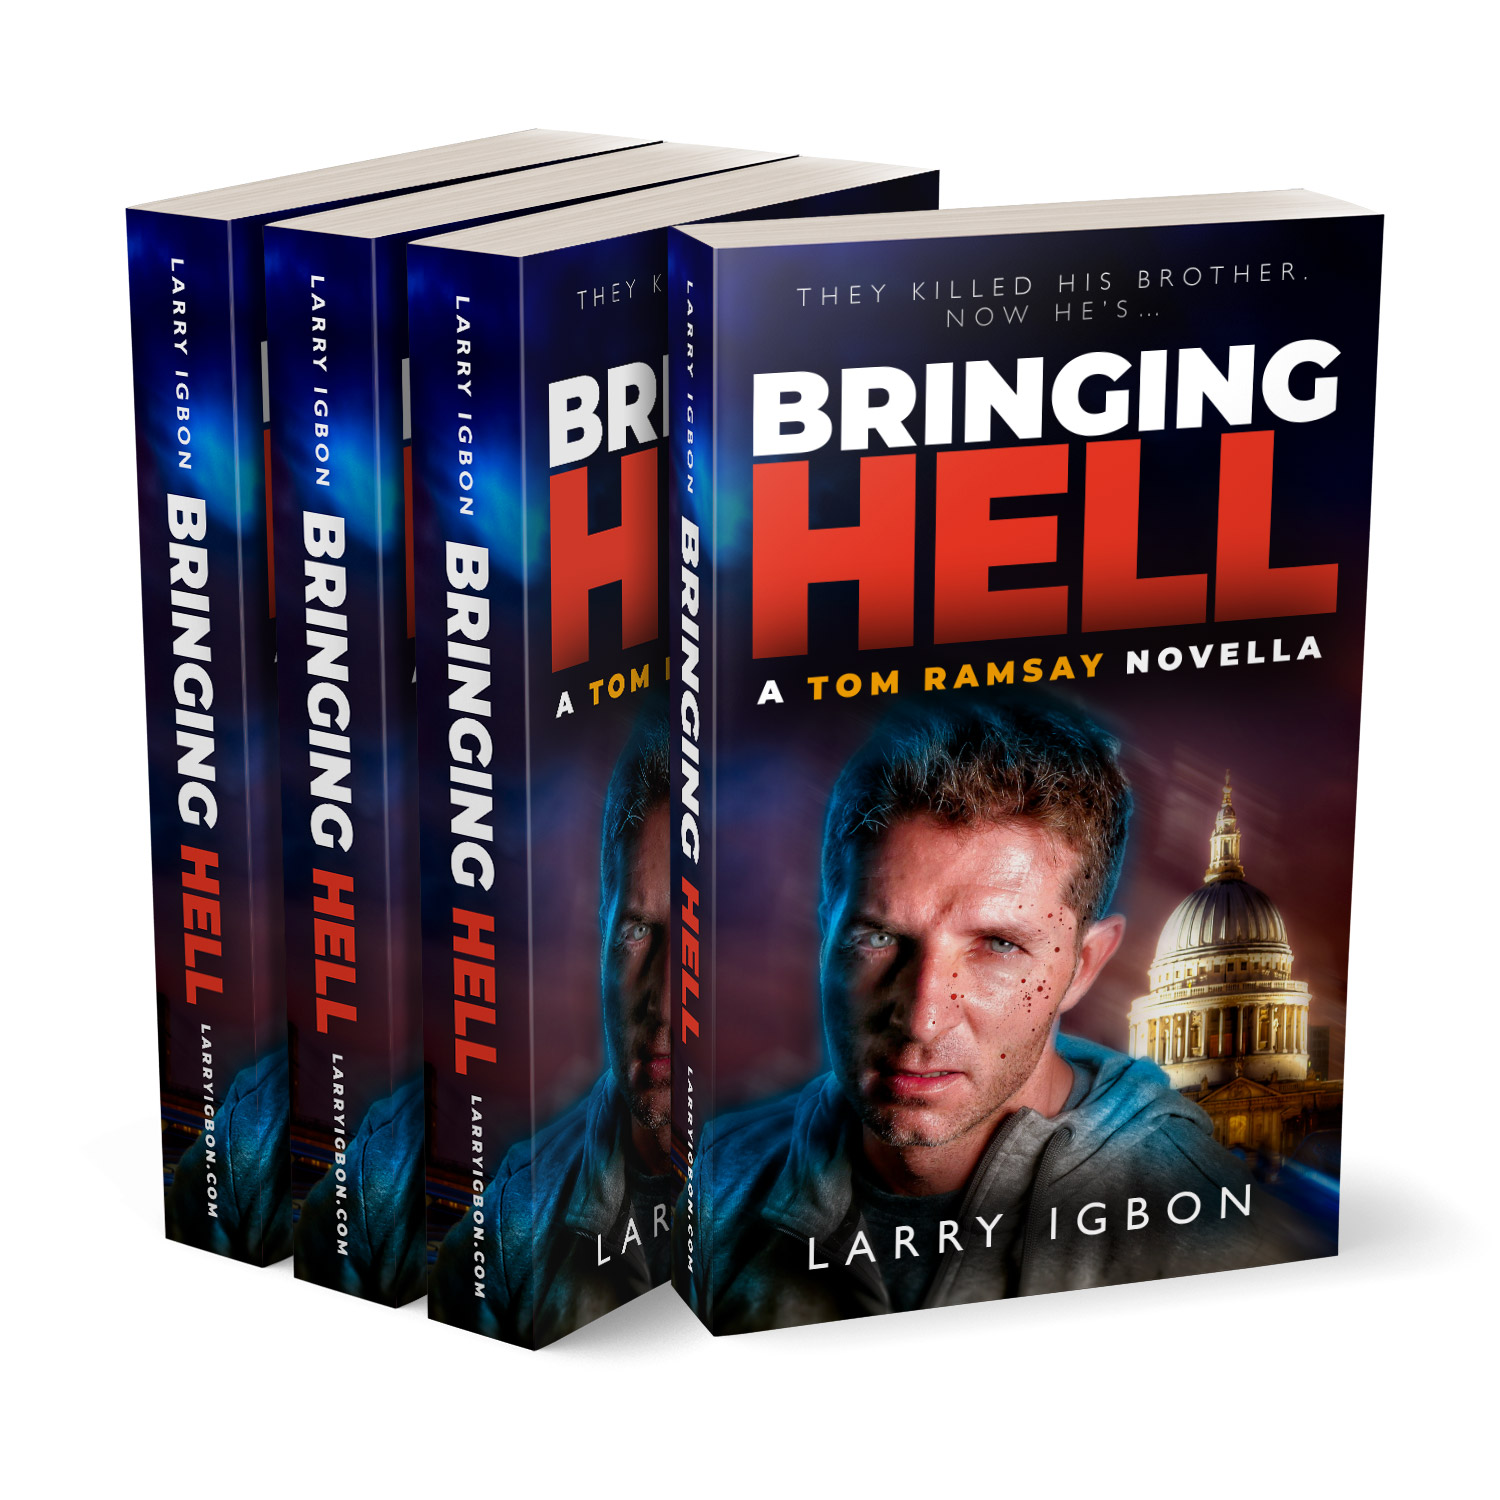 'Bringing Hell' is a hard-bitten revenge thriller. The author is Larry Igbon. The book cover design and interior formatting are by Mark Thomas. To learn more about what Mark could do for your book, please visit coverness.com.